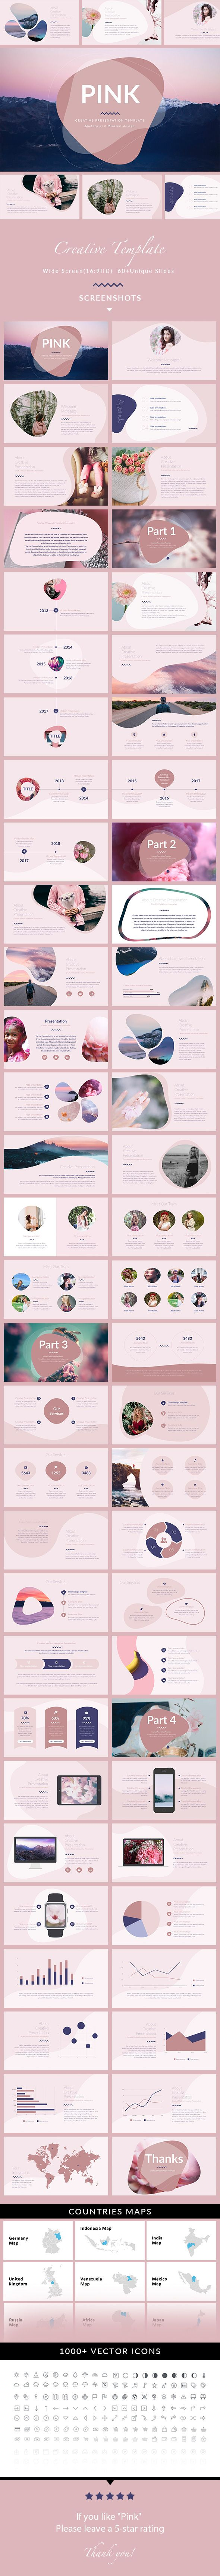 Pink minimal creative powerpoint template general description 16 pink minimal creative powerpoint template general description 169 screen size 60 toneelgroepblik Choice Image